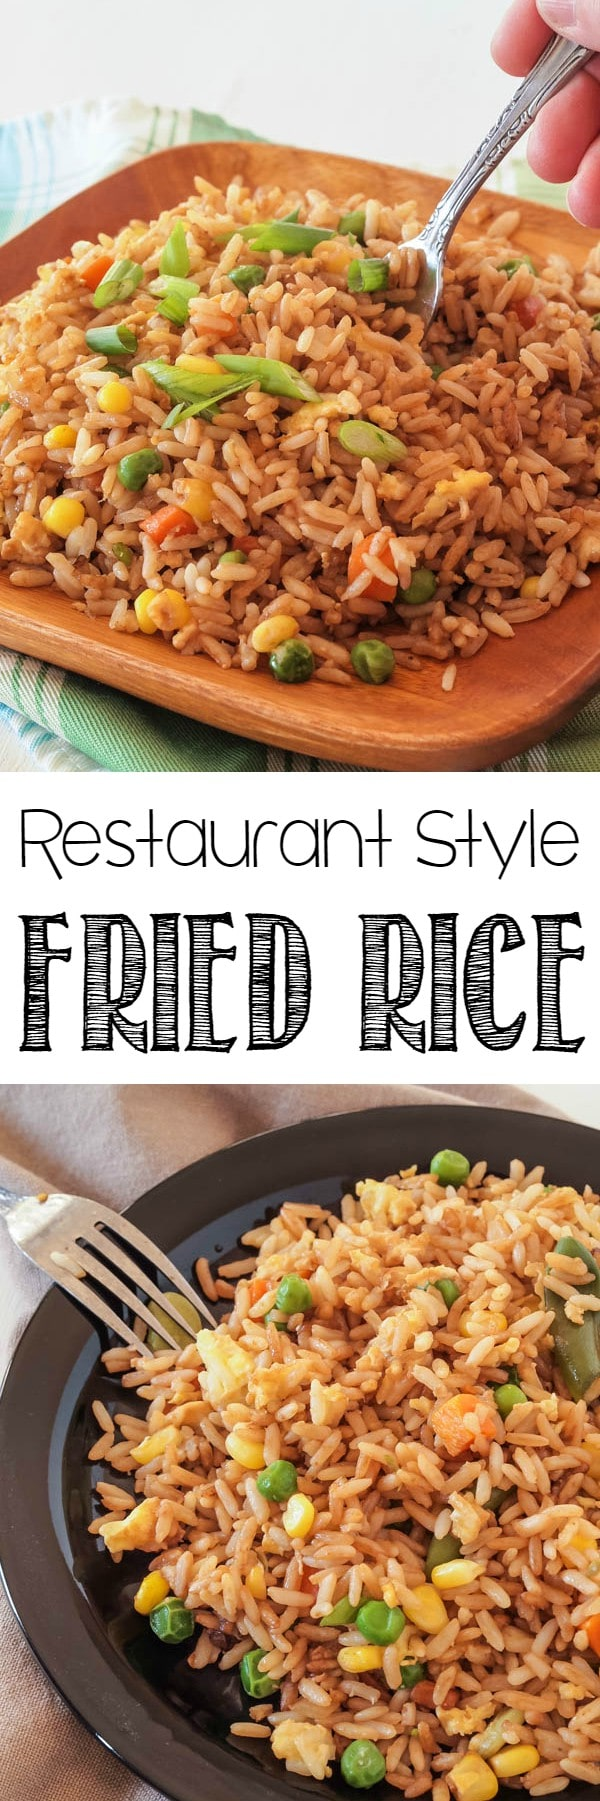 No Chinese meal is complete without this Restaurant Style Fried Rice. Serve it alongside our Gluten Free Chicken Balls to fill your craving for take-out